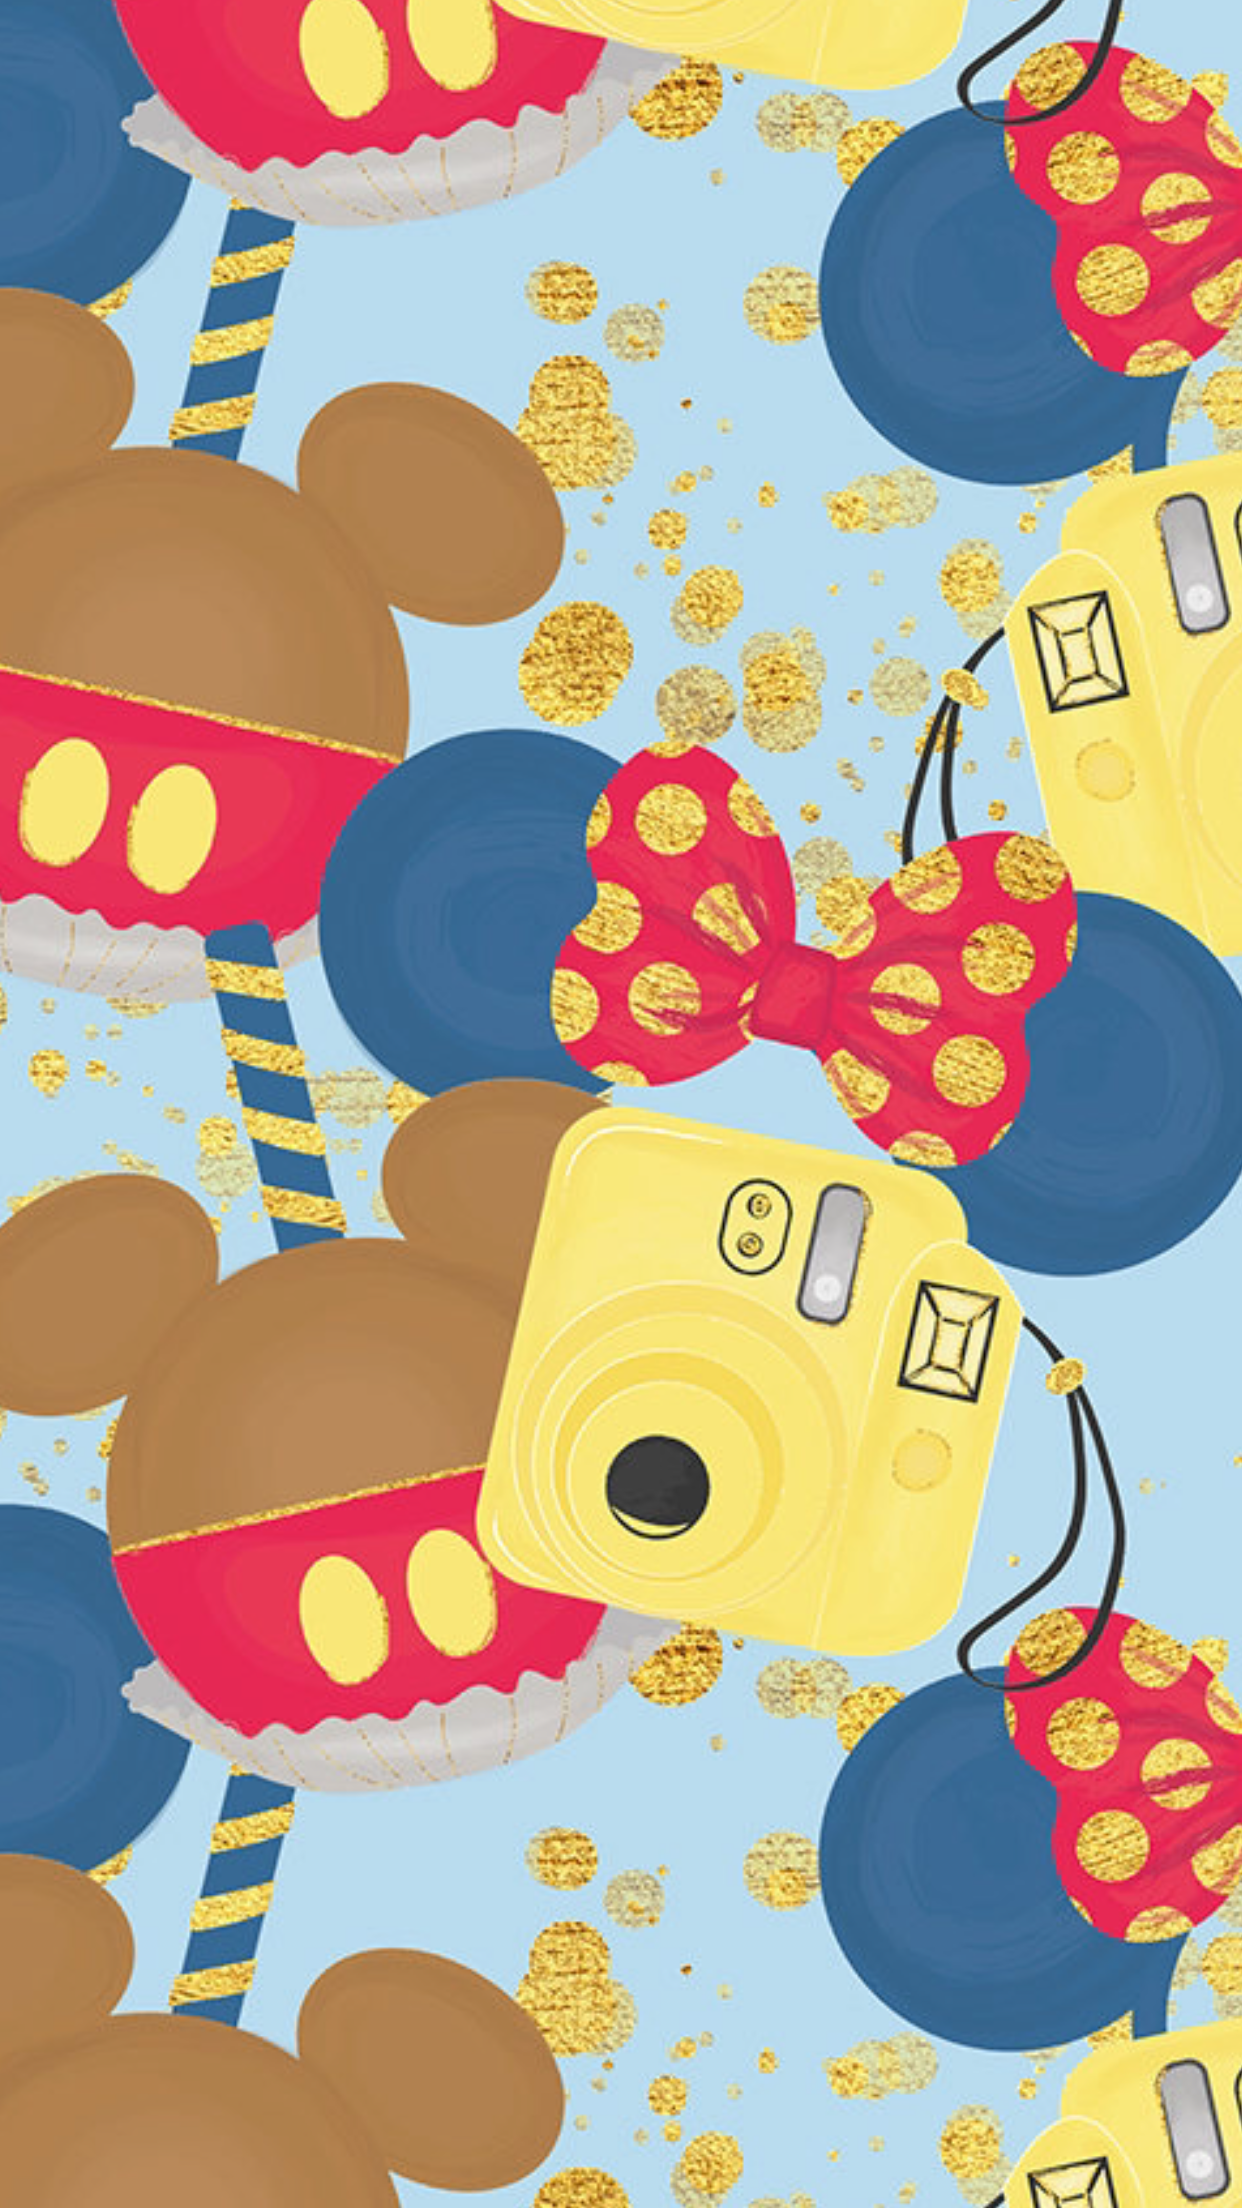 Pin by Champ Champ' on Toy story Disney phone wallpaper